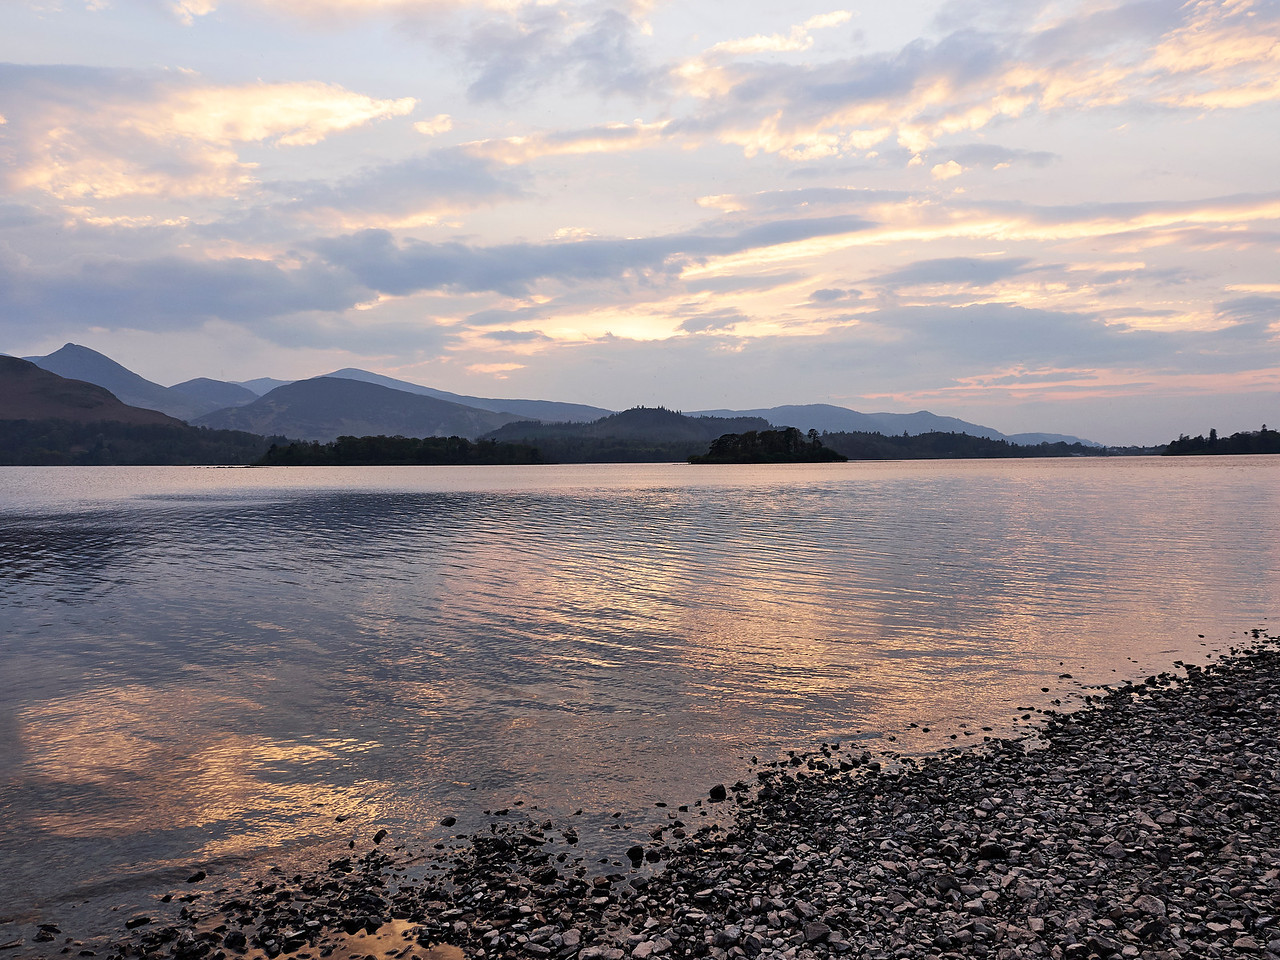 Sunset over Derwent Water